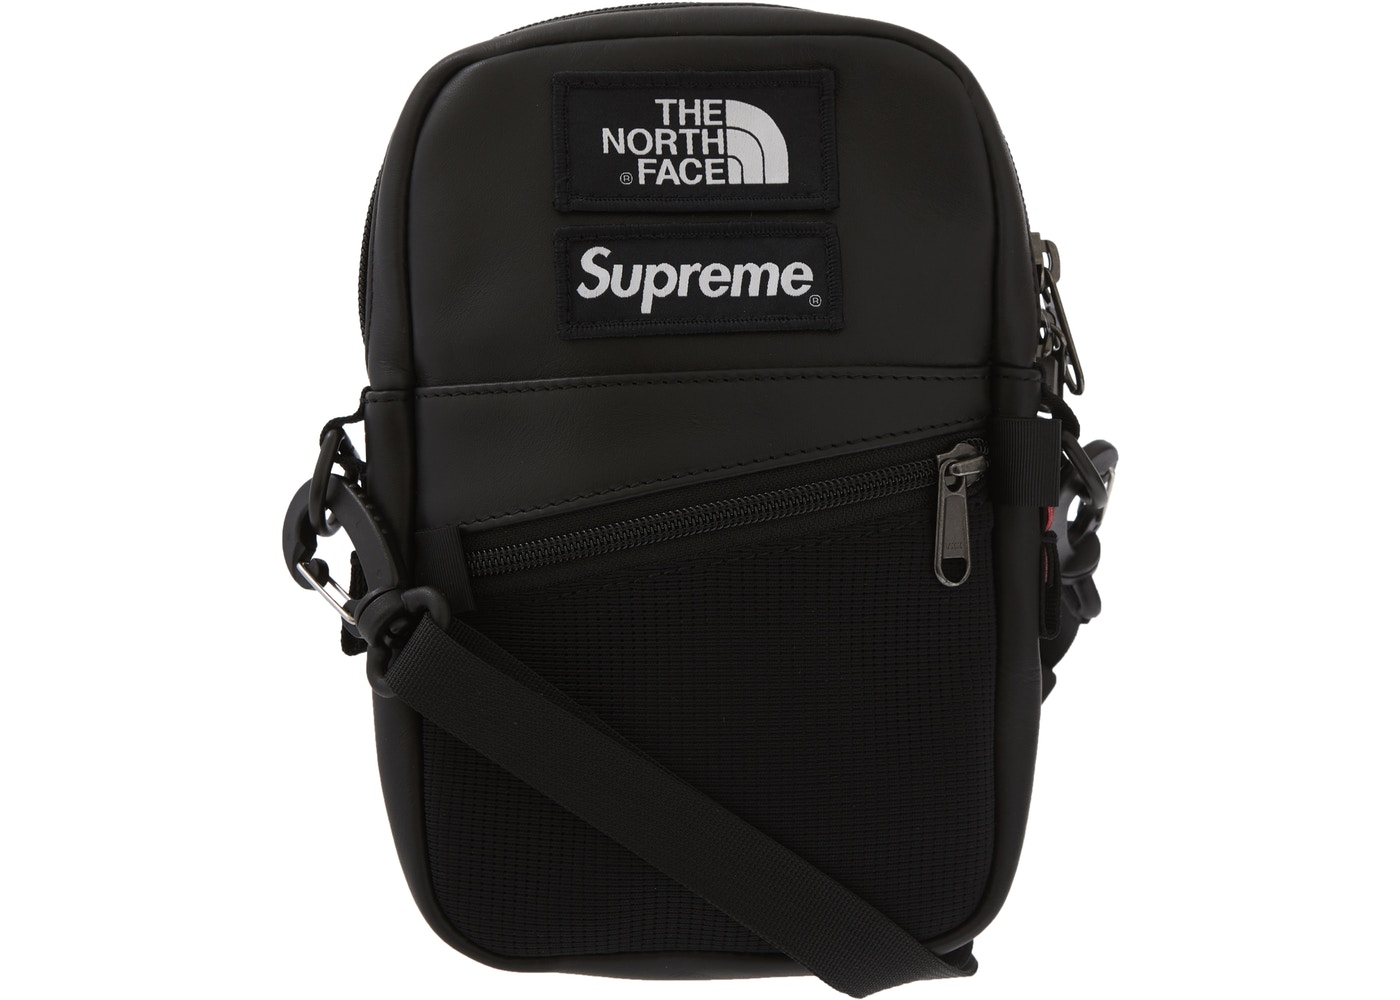 4e4a0d3ed Supreme The North Face Leather Shoulder Bag Black - FW18